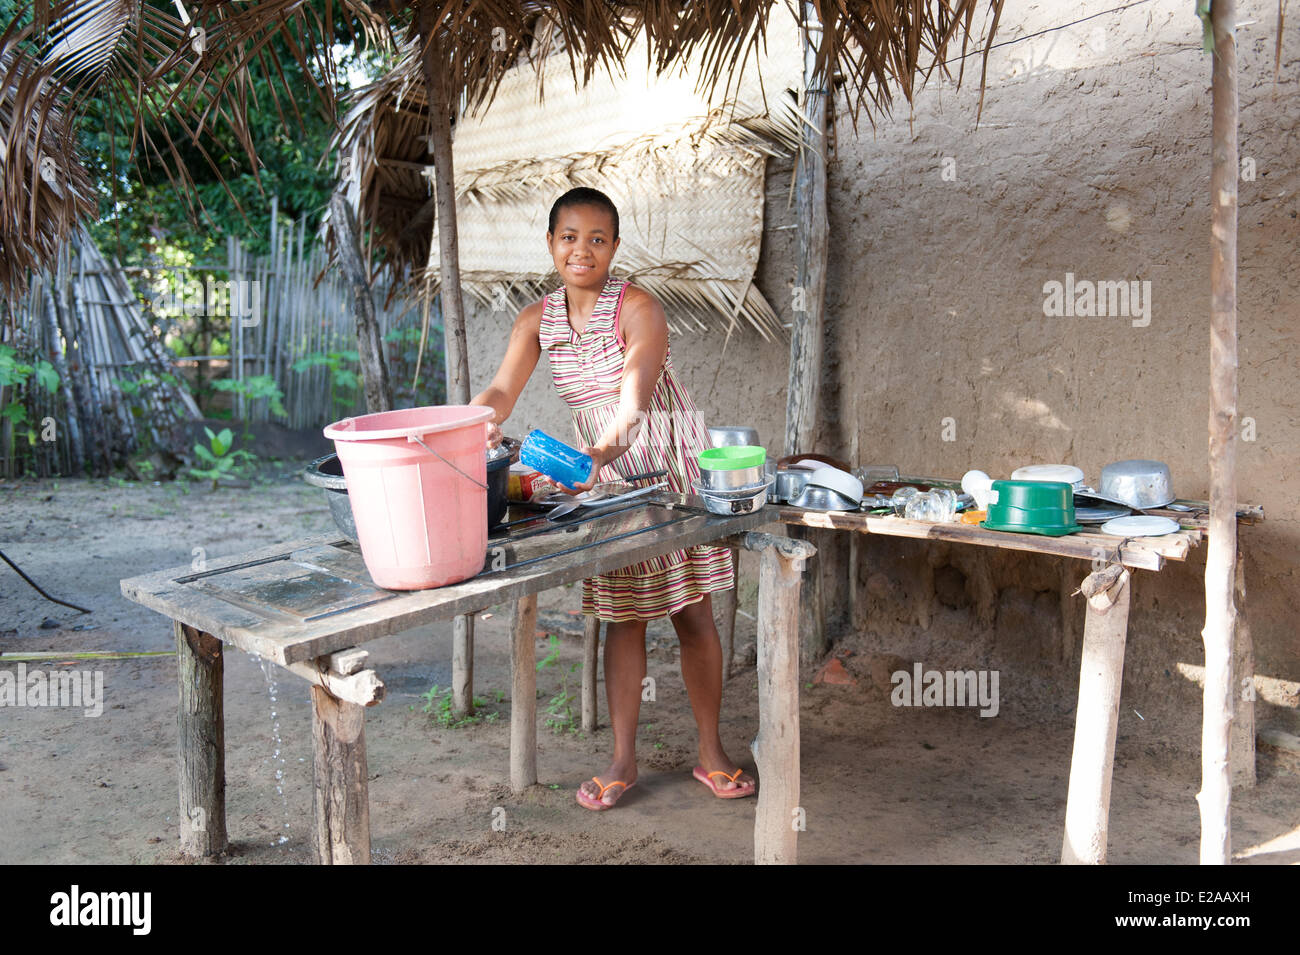 Young woman cleaning dishes. The water must be manually pumped. Streets, villages and people in Codó, Maranhao, - Stock Image